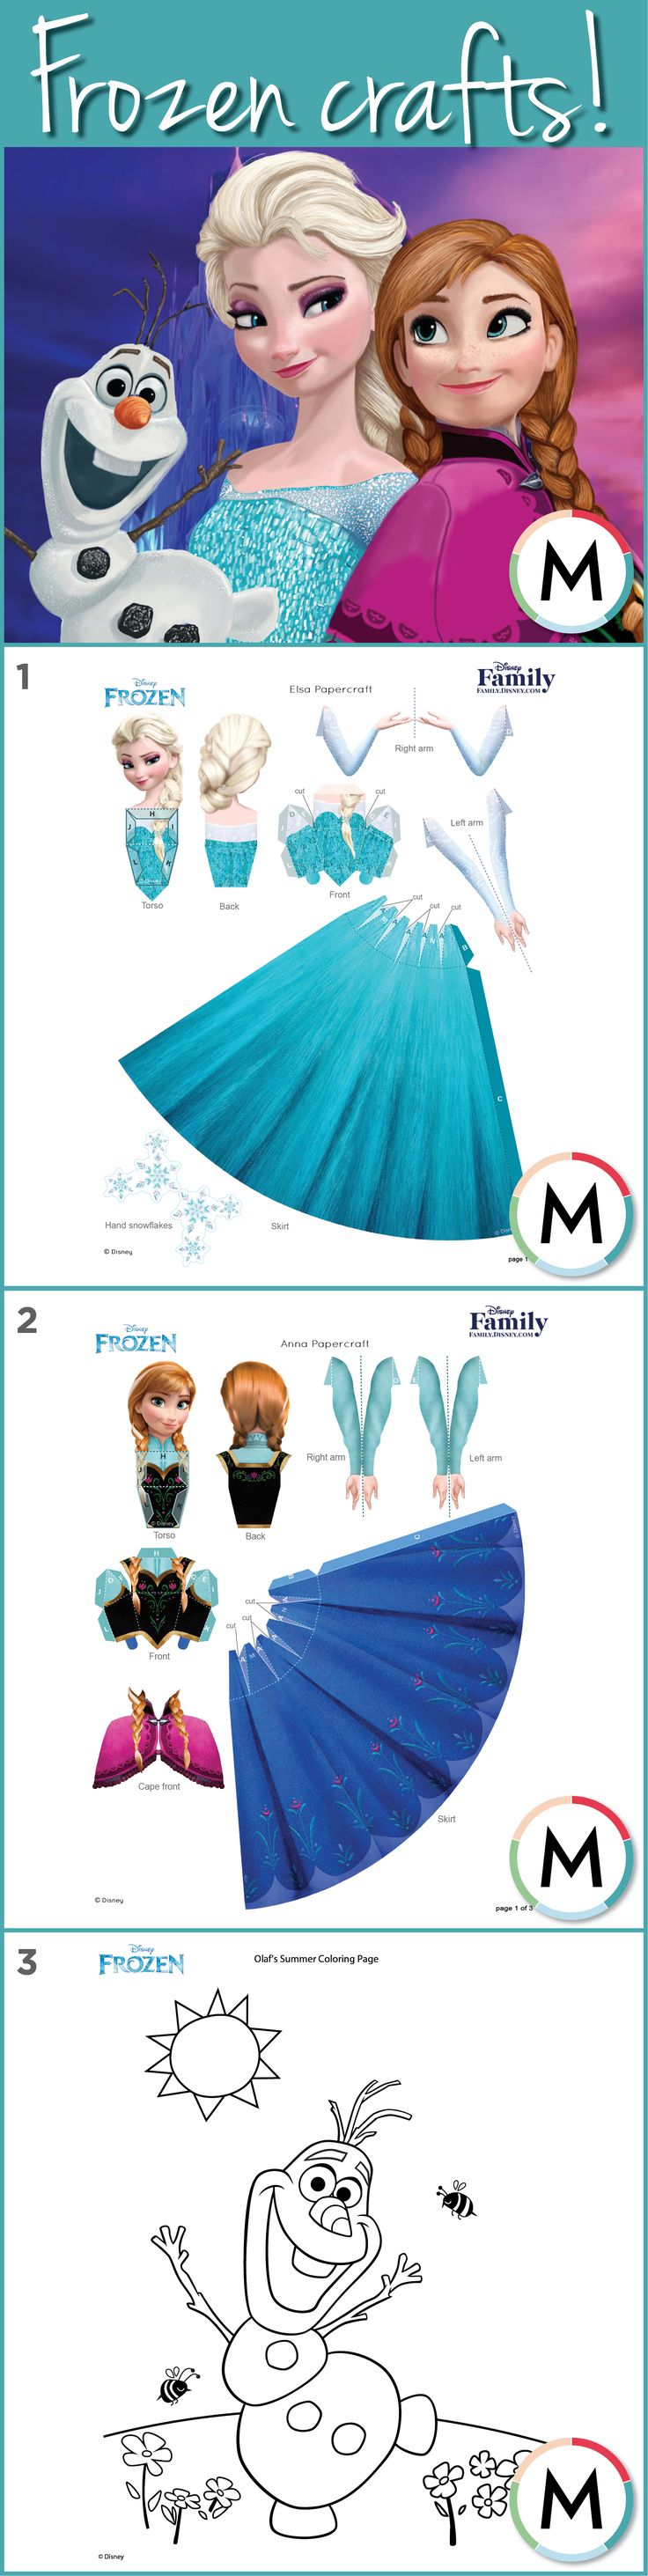 Frozen Printables! Your kids can act out the scenes and sing 'Let It Go' to their heart's content with these little paper doll versions of Elsa and Anna! Free printables to download with easy instructions. PLUS: Olaf colouring page! Free printables download links below. ELSA: http://family.disney.com/crafts/elsa-papercraft ANNA: http://family.disney.com/crafts/anna-papercraft OLAF: http://family.disney.com/activities/olafs-summer-coloring-page #BeatTheBoredom #frozen #letitgo #elsa #anna…